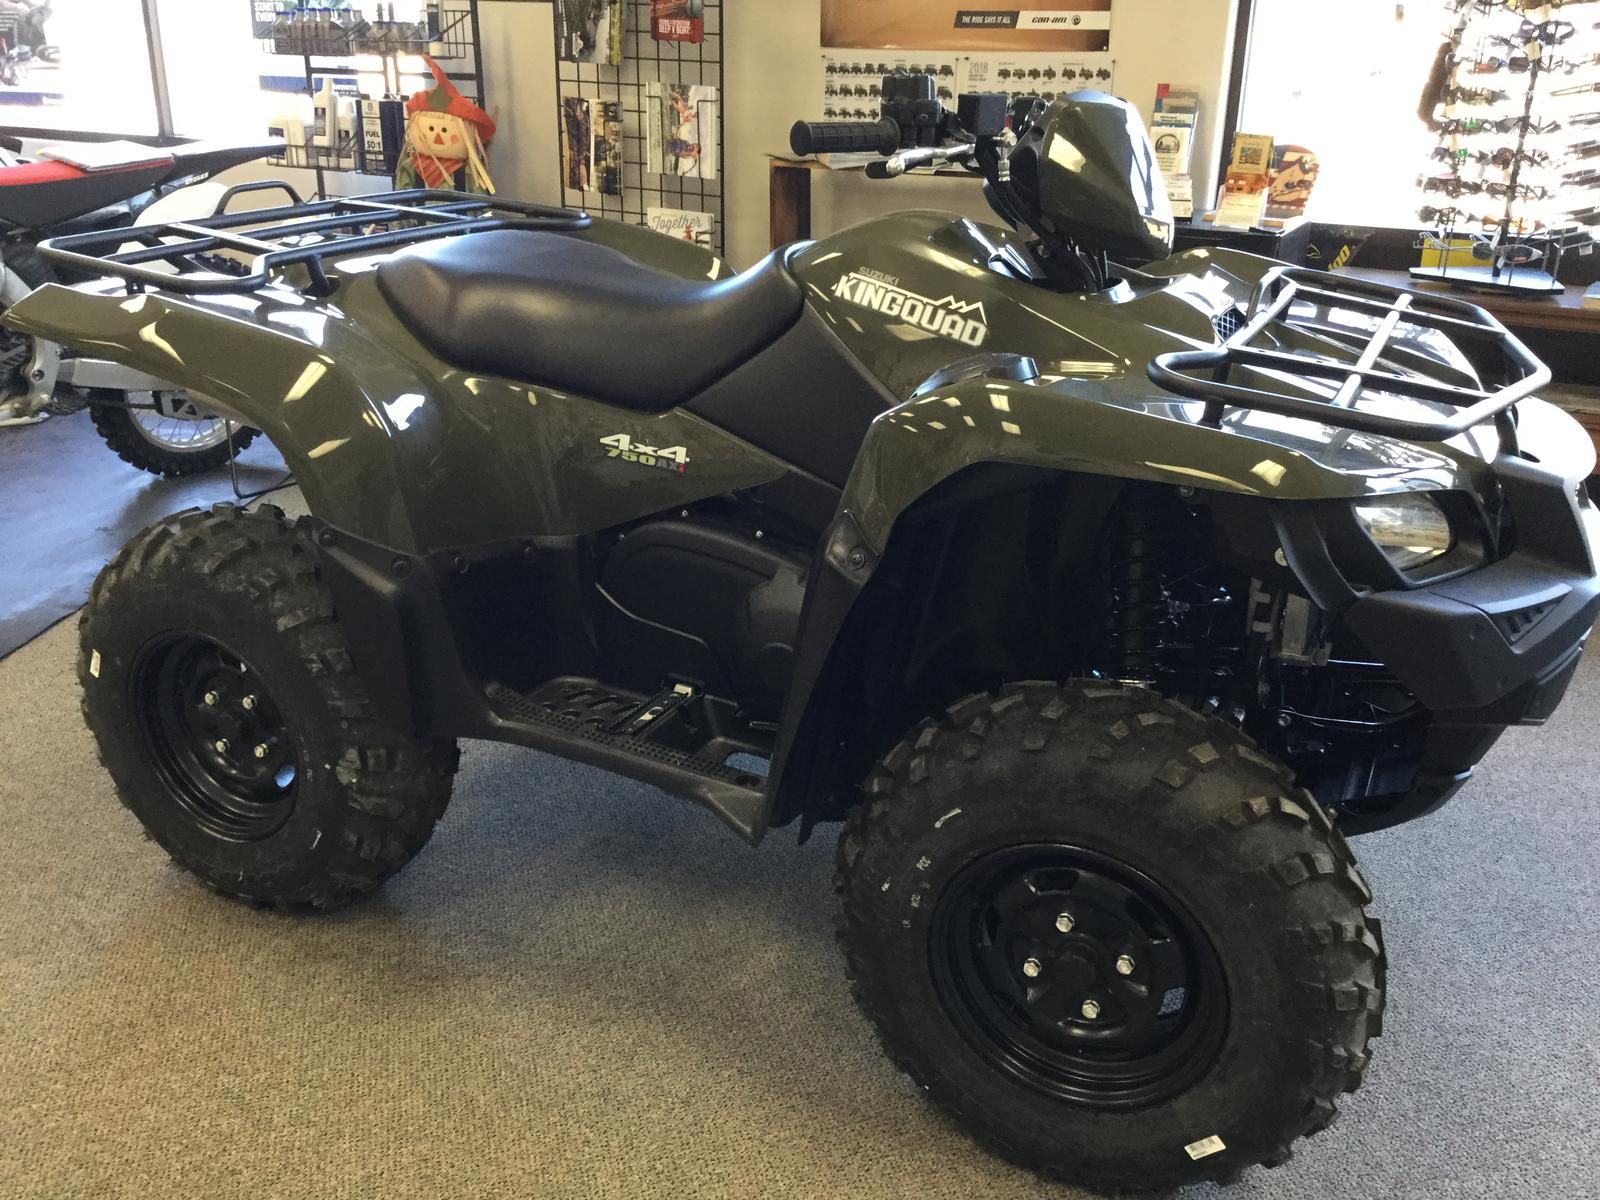 2017 Suzuki KINGQUAD 750 for sale in Ronan, MT. S & S Sports